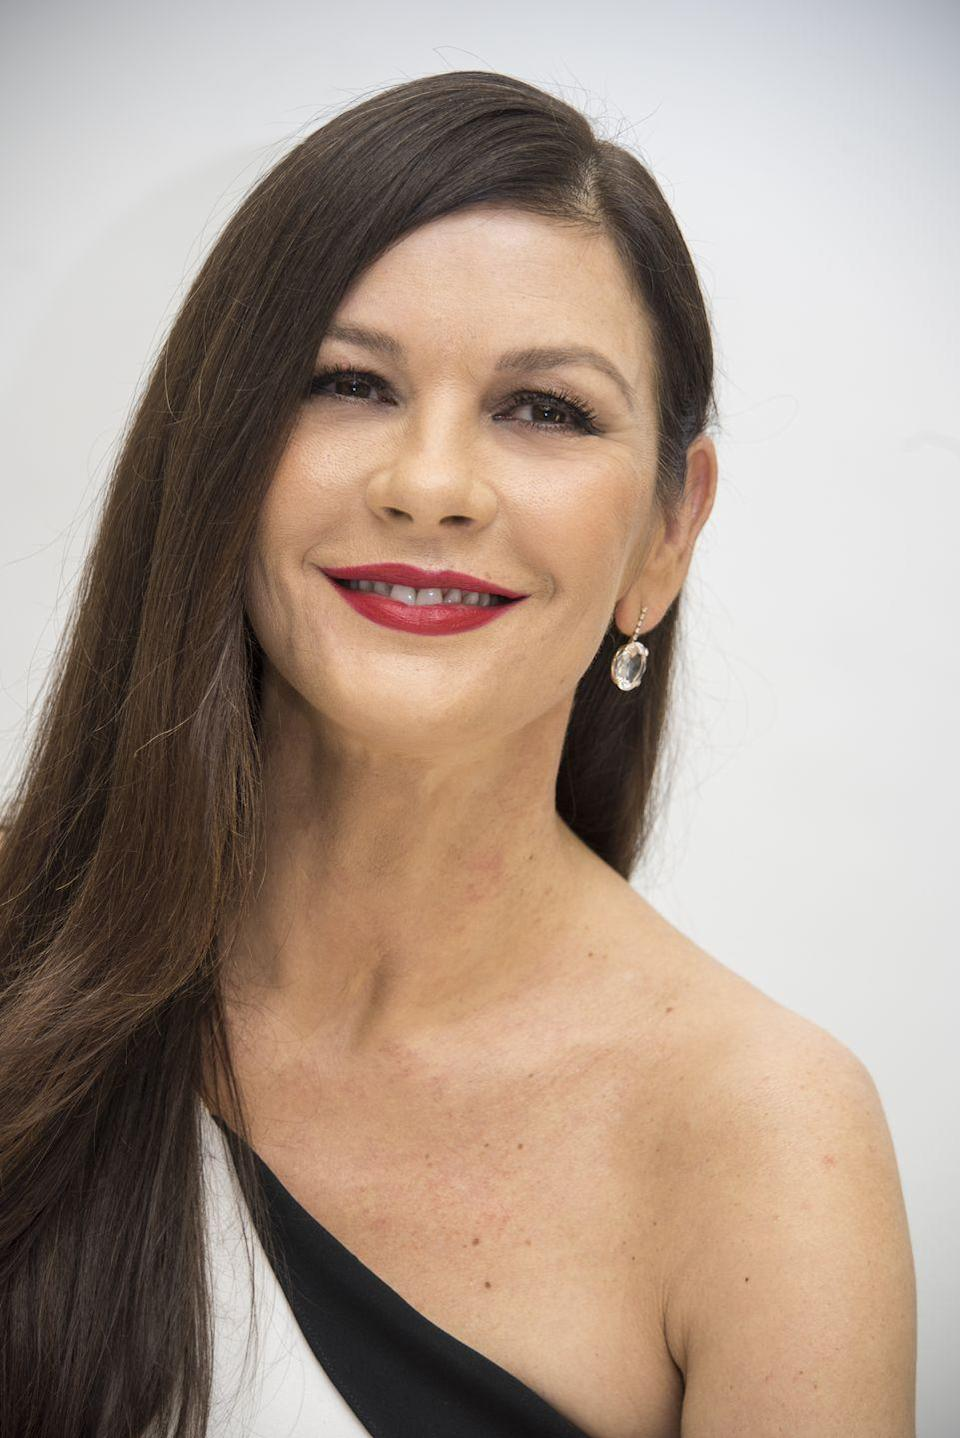 """<p>The <em>Chicago </em>and <em>Intolerable Cruelty </em>actress has <a href=""""http://abcnews.go.com/GMA/video/catherine-zeta-jones-gma-interview-2012-discusses-bipolar-17903236"""" rel=""""nofollow noopener"""" target=""""_blank"""" data-ylk=""""slk:spoken"""" class=""""link rapid-noclick-resp"""">spoken</a> about her battle with bipolar disorder for years, especially during her split and subsequent reconciliation with husband Michael Douglas. The mental illness, also known as manic-depressive illness, causes extreme episodes of depression and abnormally elevated mood called mania or hypomania. </p>"""